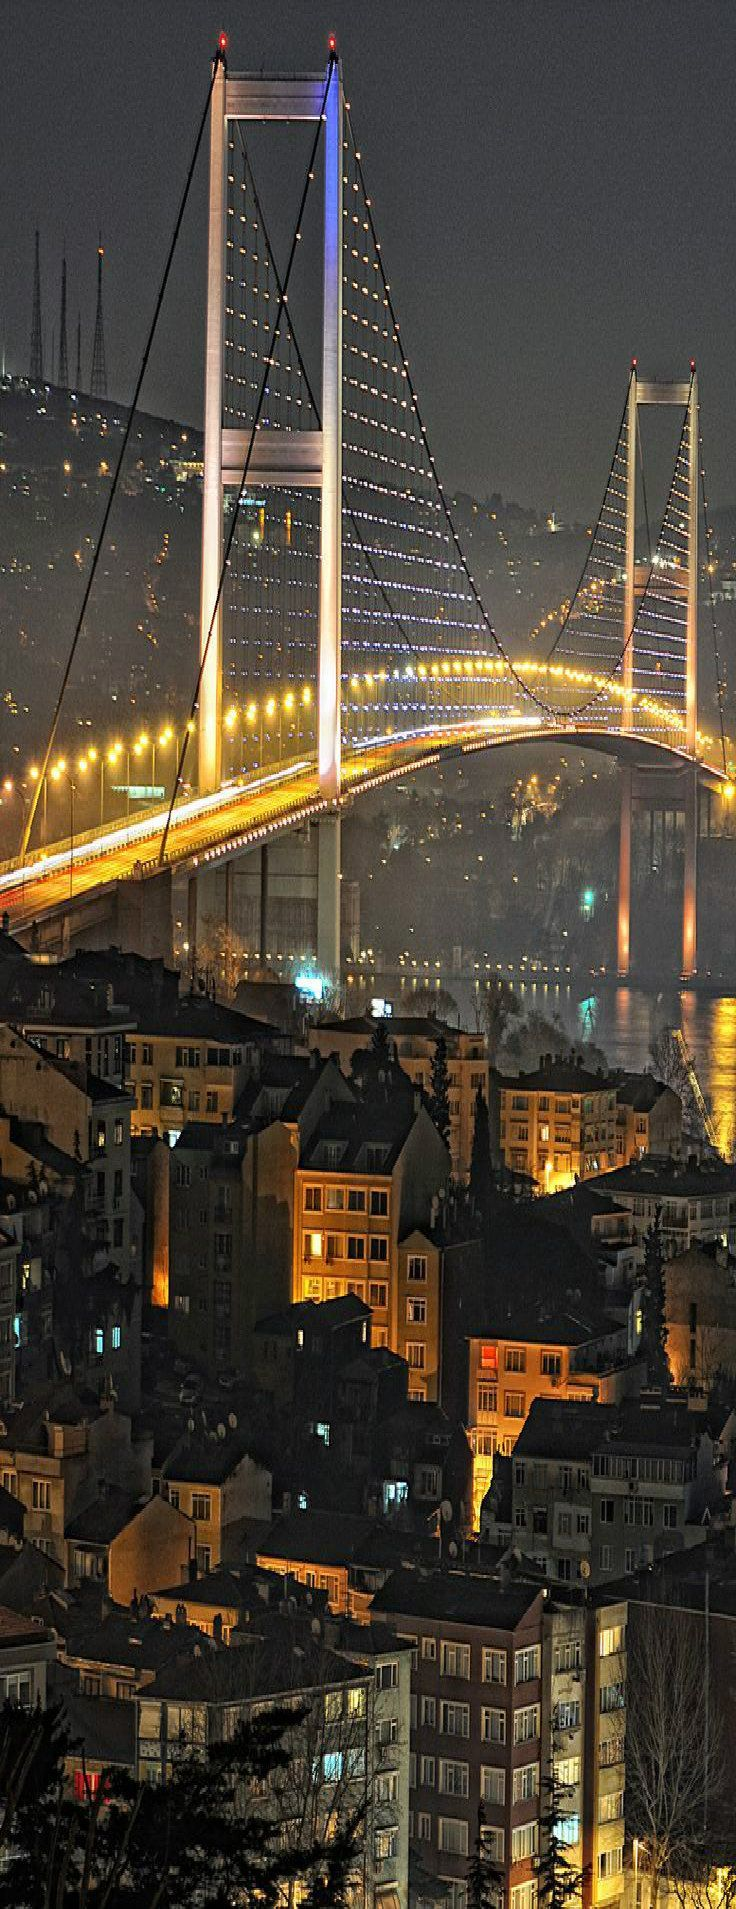 Connecting continents. Bosphorus Bridge, Istanbul, Turkey.